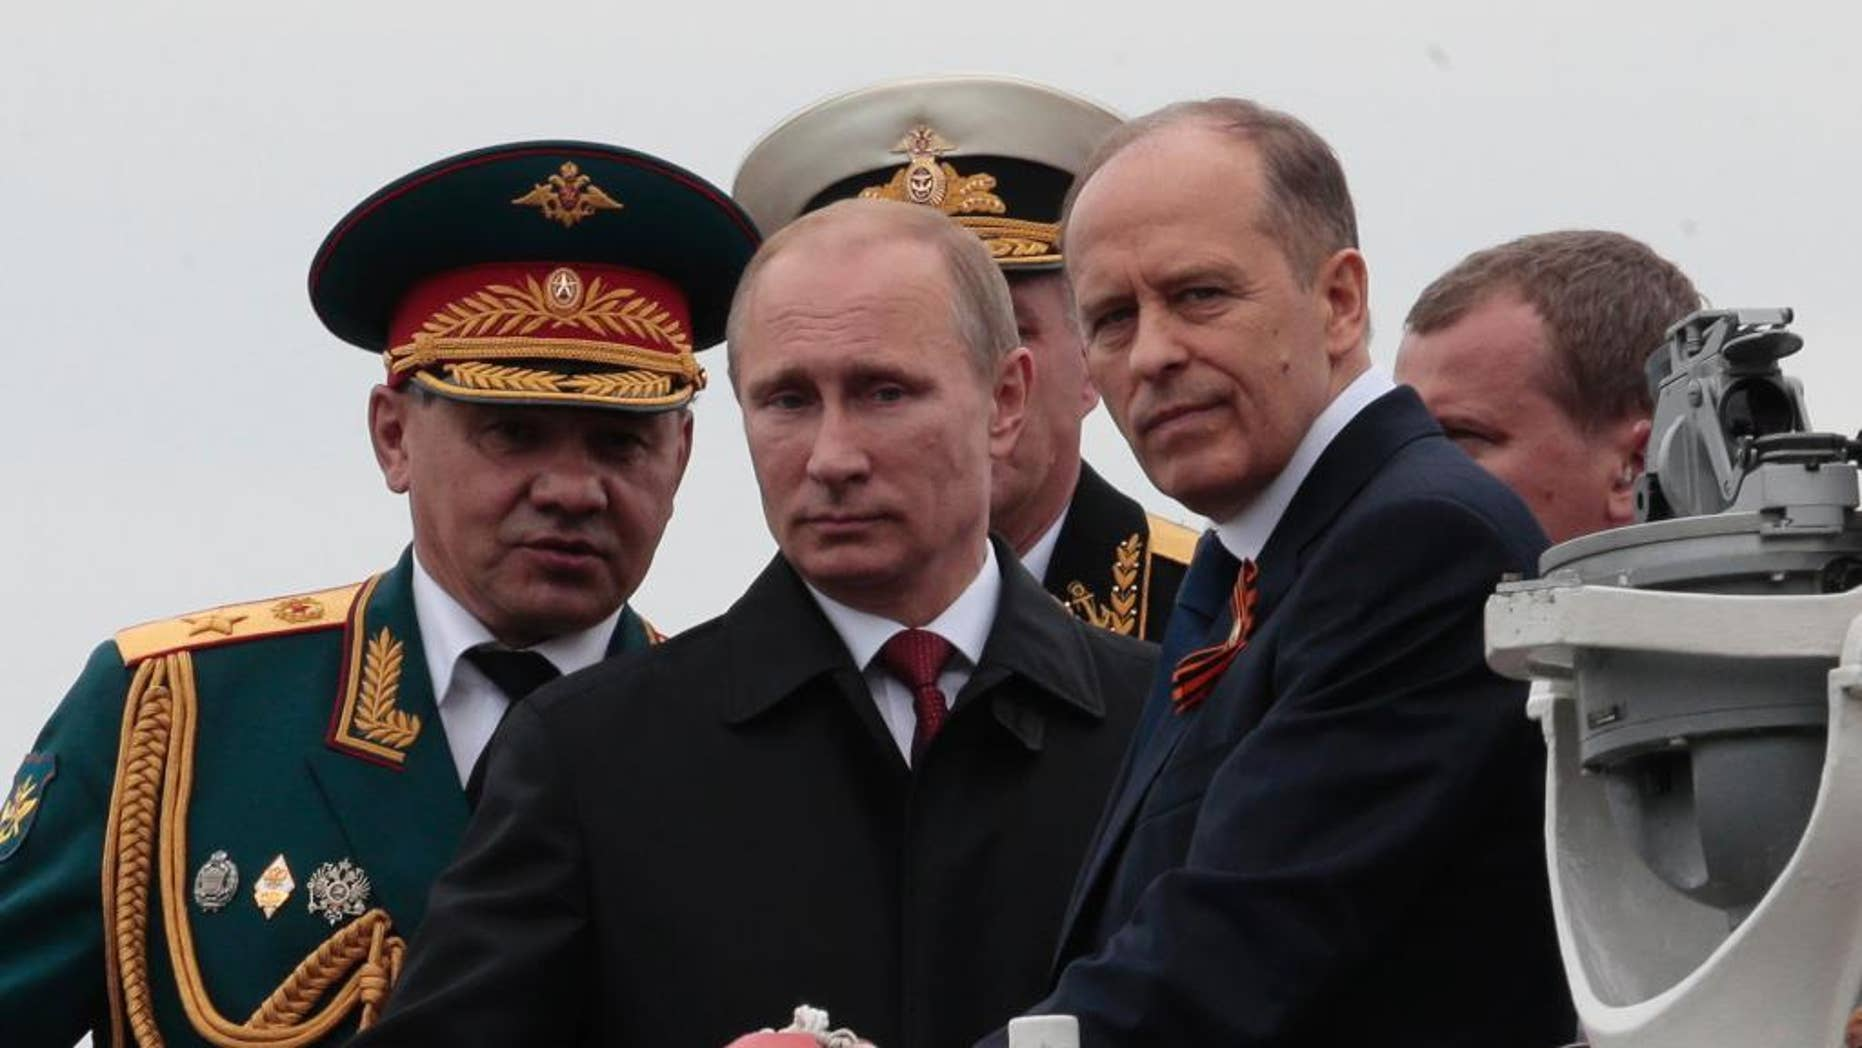 FILE - In this file photo taken on Friday, May 9, 2014, Russian President Vladimir Putin, centre, flanked by Defense Minister Sergei Shoigu, left, and Federal Security Service Chief Alexander Bortnikov, right, arrives on a boat after inspecting battleships during a navy parade marking the Victory Day in Sevastopol, Crimea. Putin on Thursday Aug. 11, 2016, directly accused the Ukrainian government of plotting attacks in the Crimea, and called for increased security in the Russian annexed Black Sea peninsula. (AP Photo/Ivan Sekretarev, FILE)